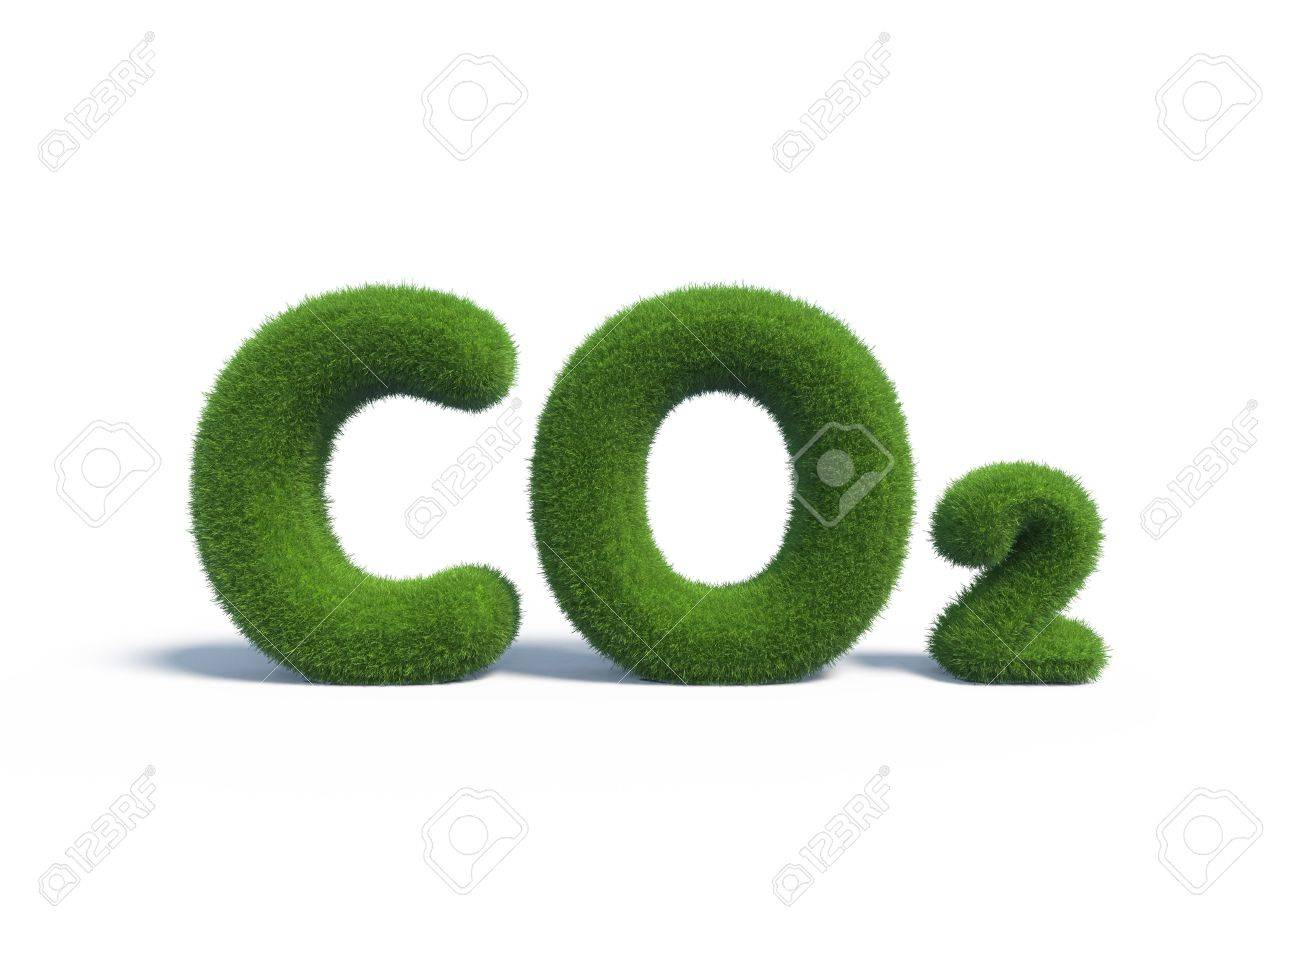 co2 green grass in the form of letters - 23822741